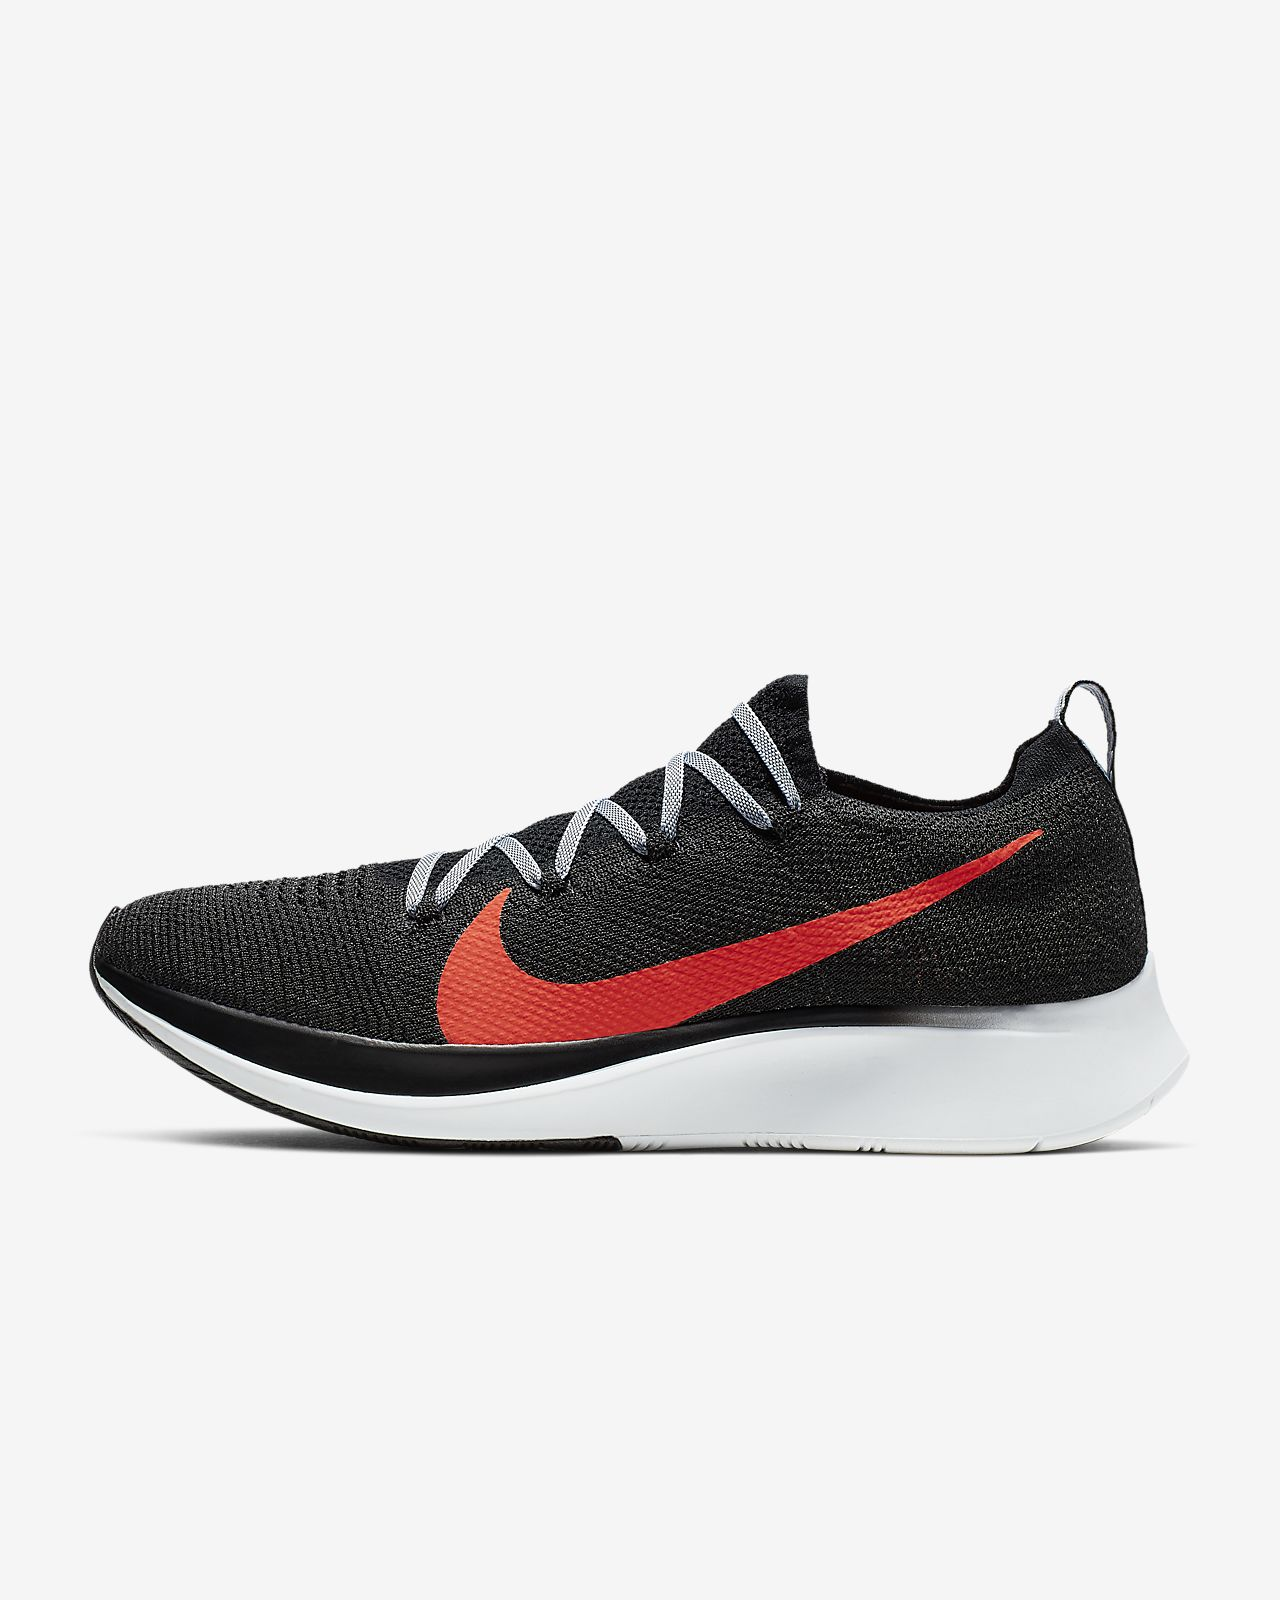 1ef827be5ee2 Nike Zoom Fly Flyknit Men s Running Shoe. Nike.com